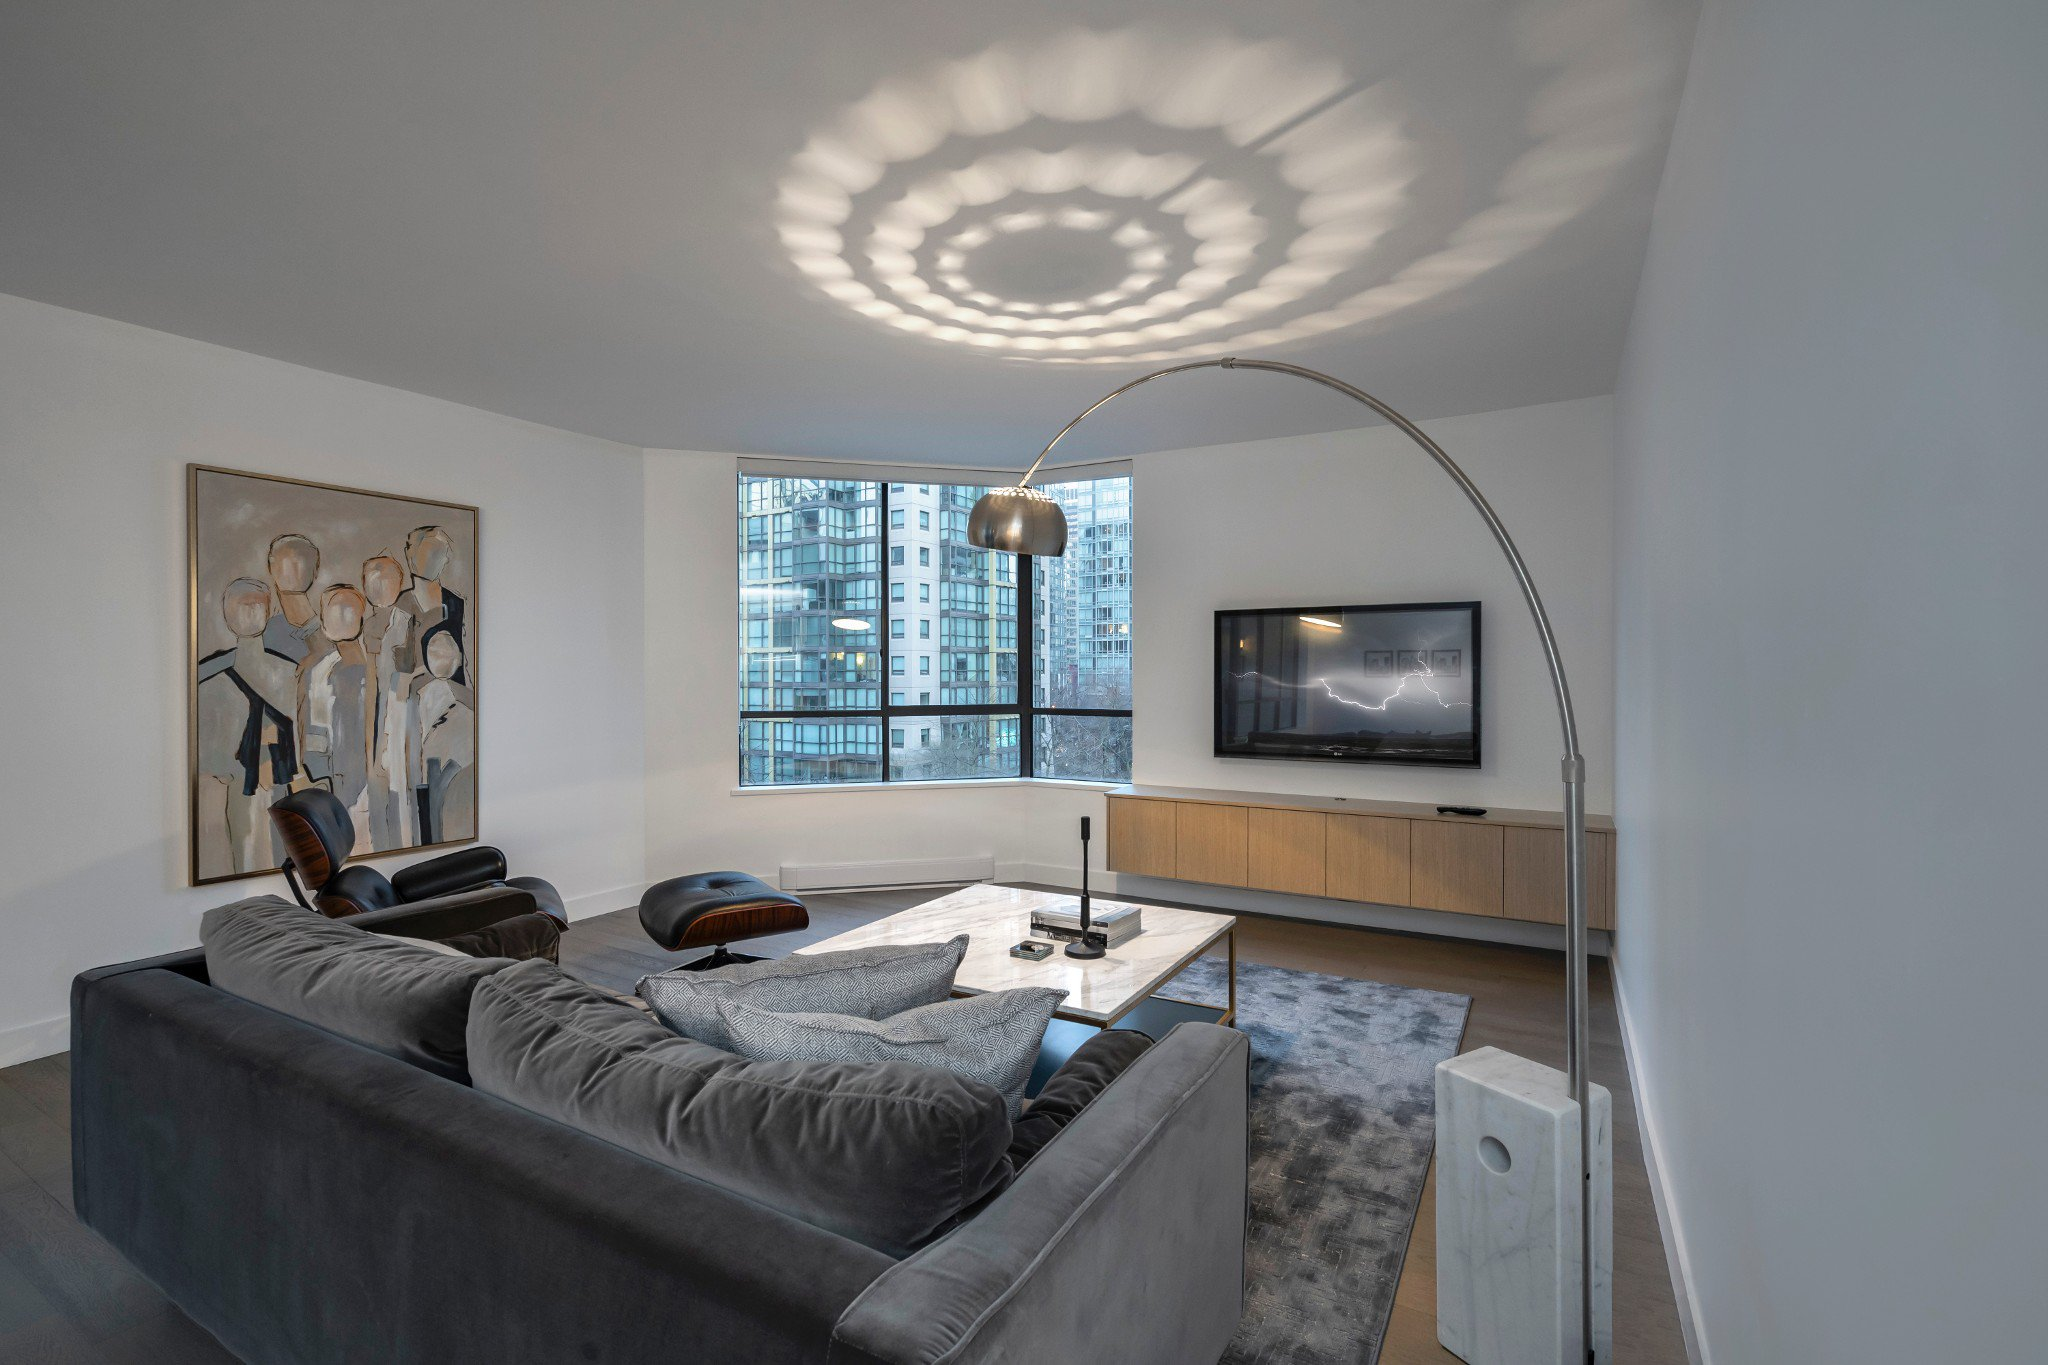 Main Photo: 738 Broughton in Vancouver: Coal Harbour Condo for lease (Vancouver West)